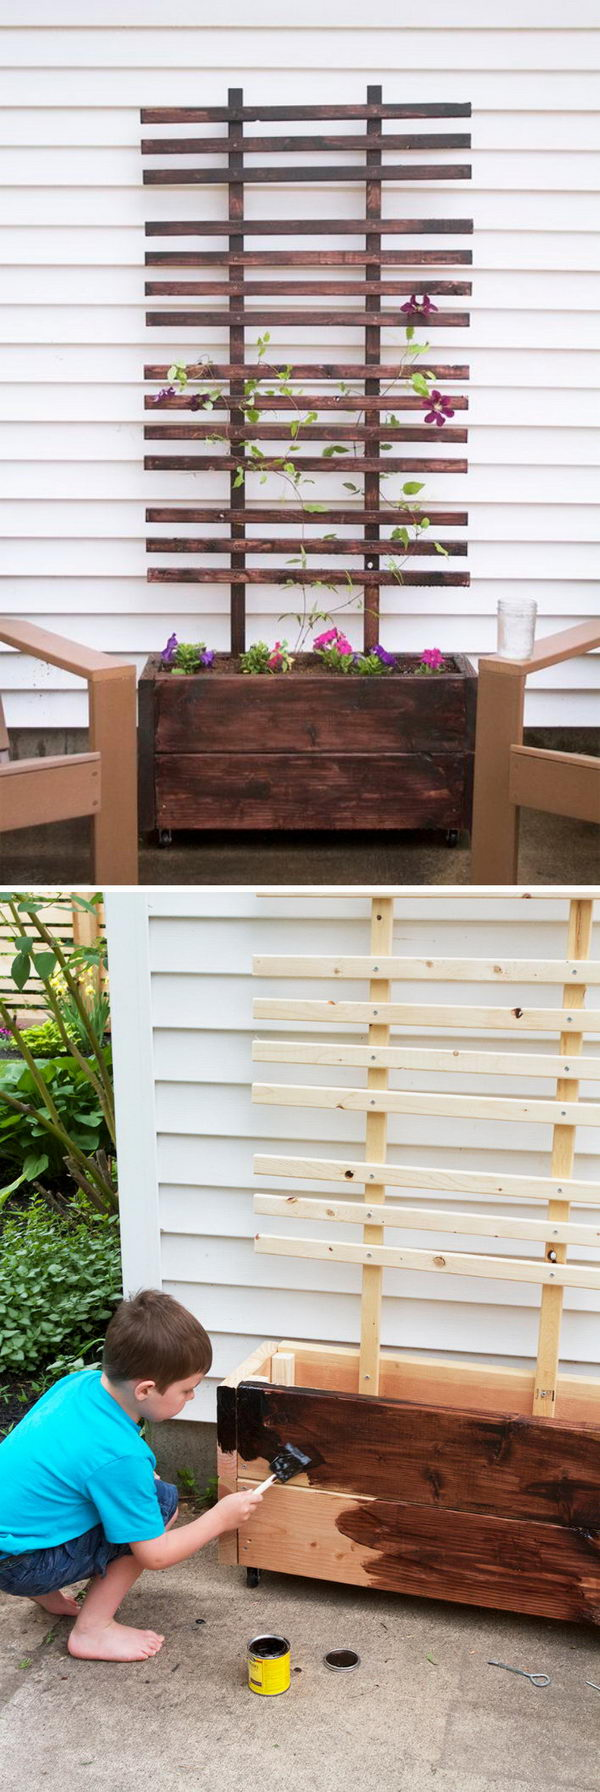 DIY Trellis Planter Box.